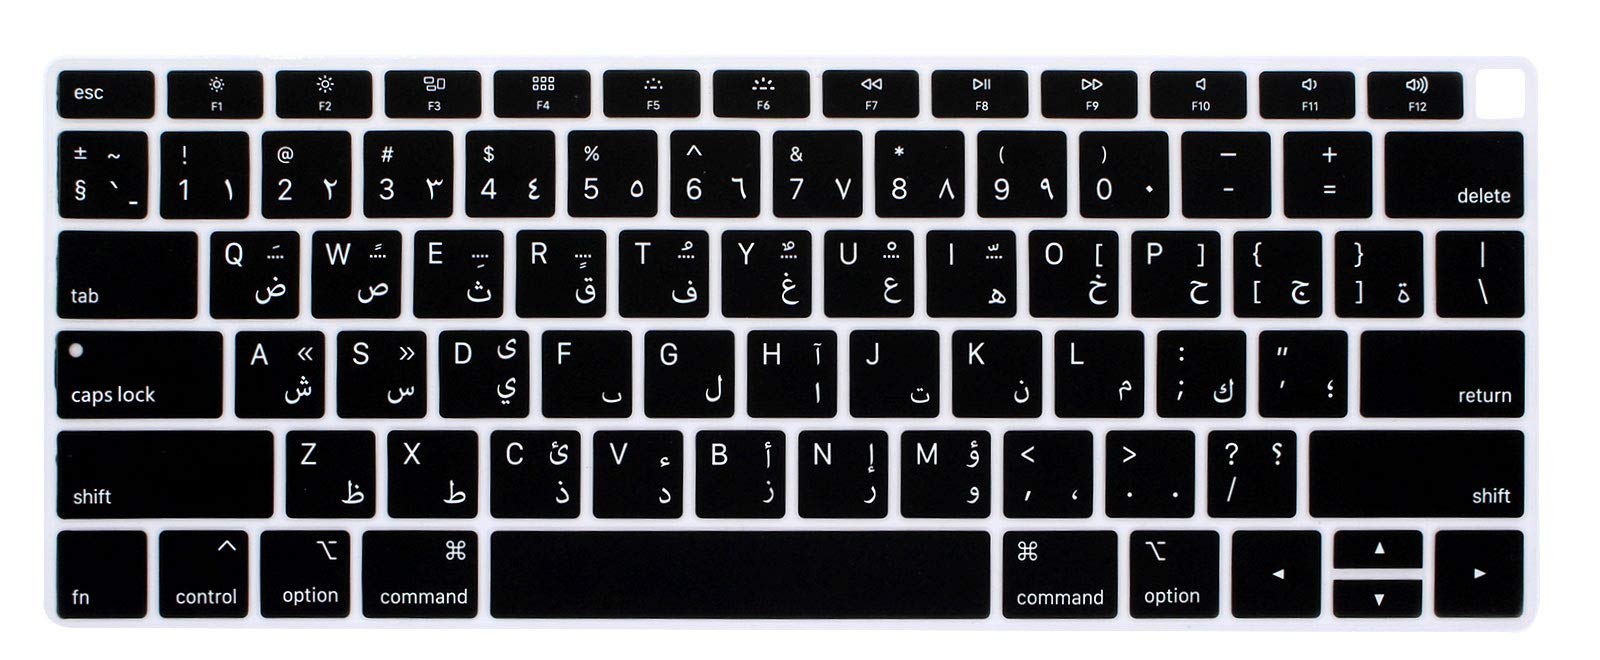 """Ultra Thin Arabic Language Black Keyboard Cover Protective Skin Compatible Newest MacBook Air 13 inch with Retina Display Model A1932, 2018 Release (not fit Old Version MacBook Air 13"""" A1369 & A1466)"""